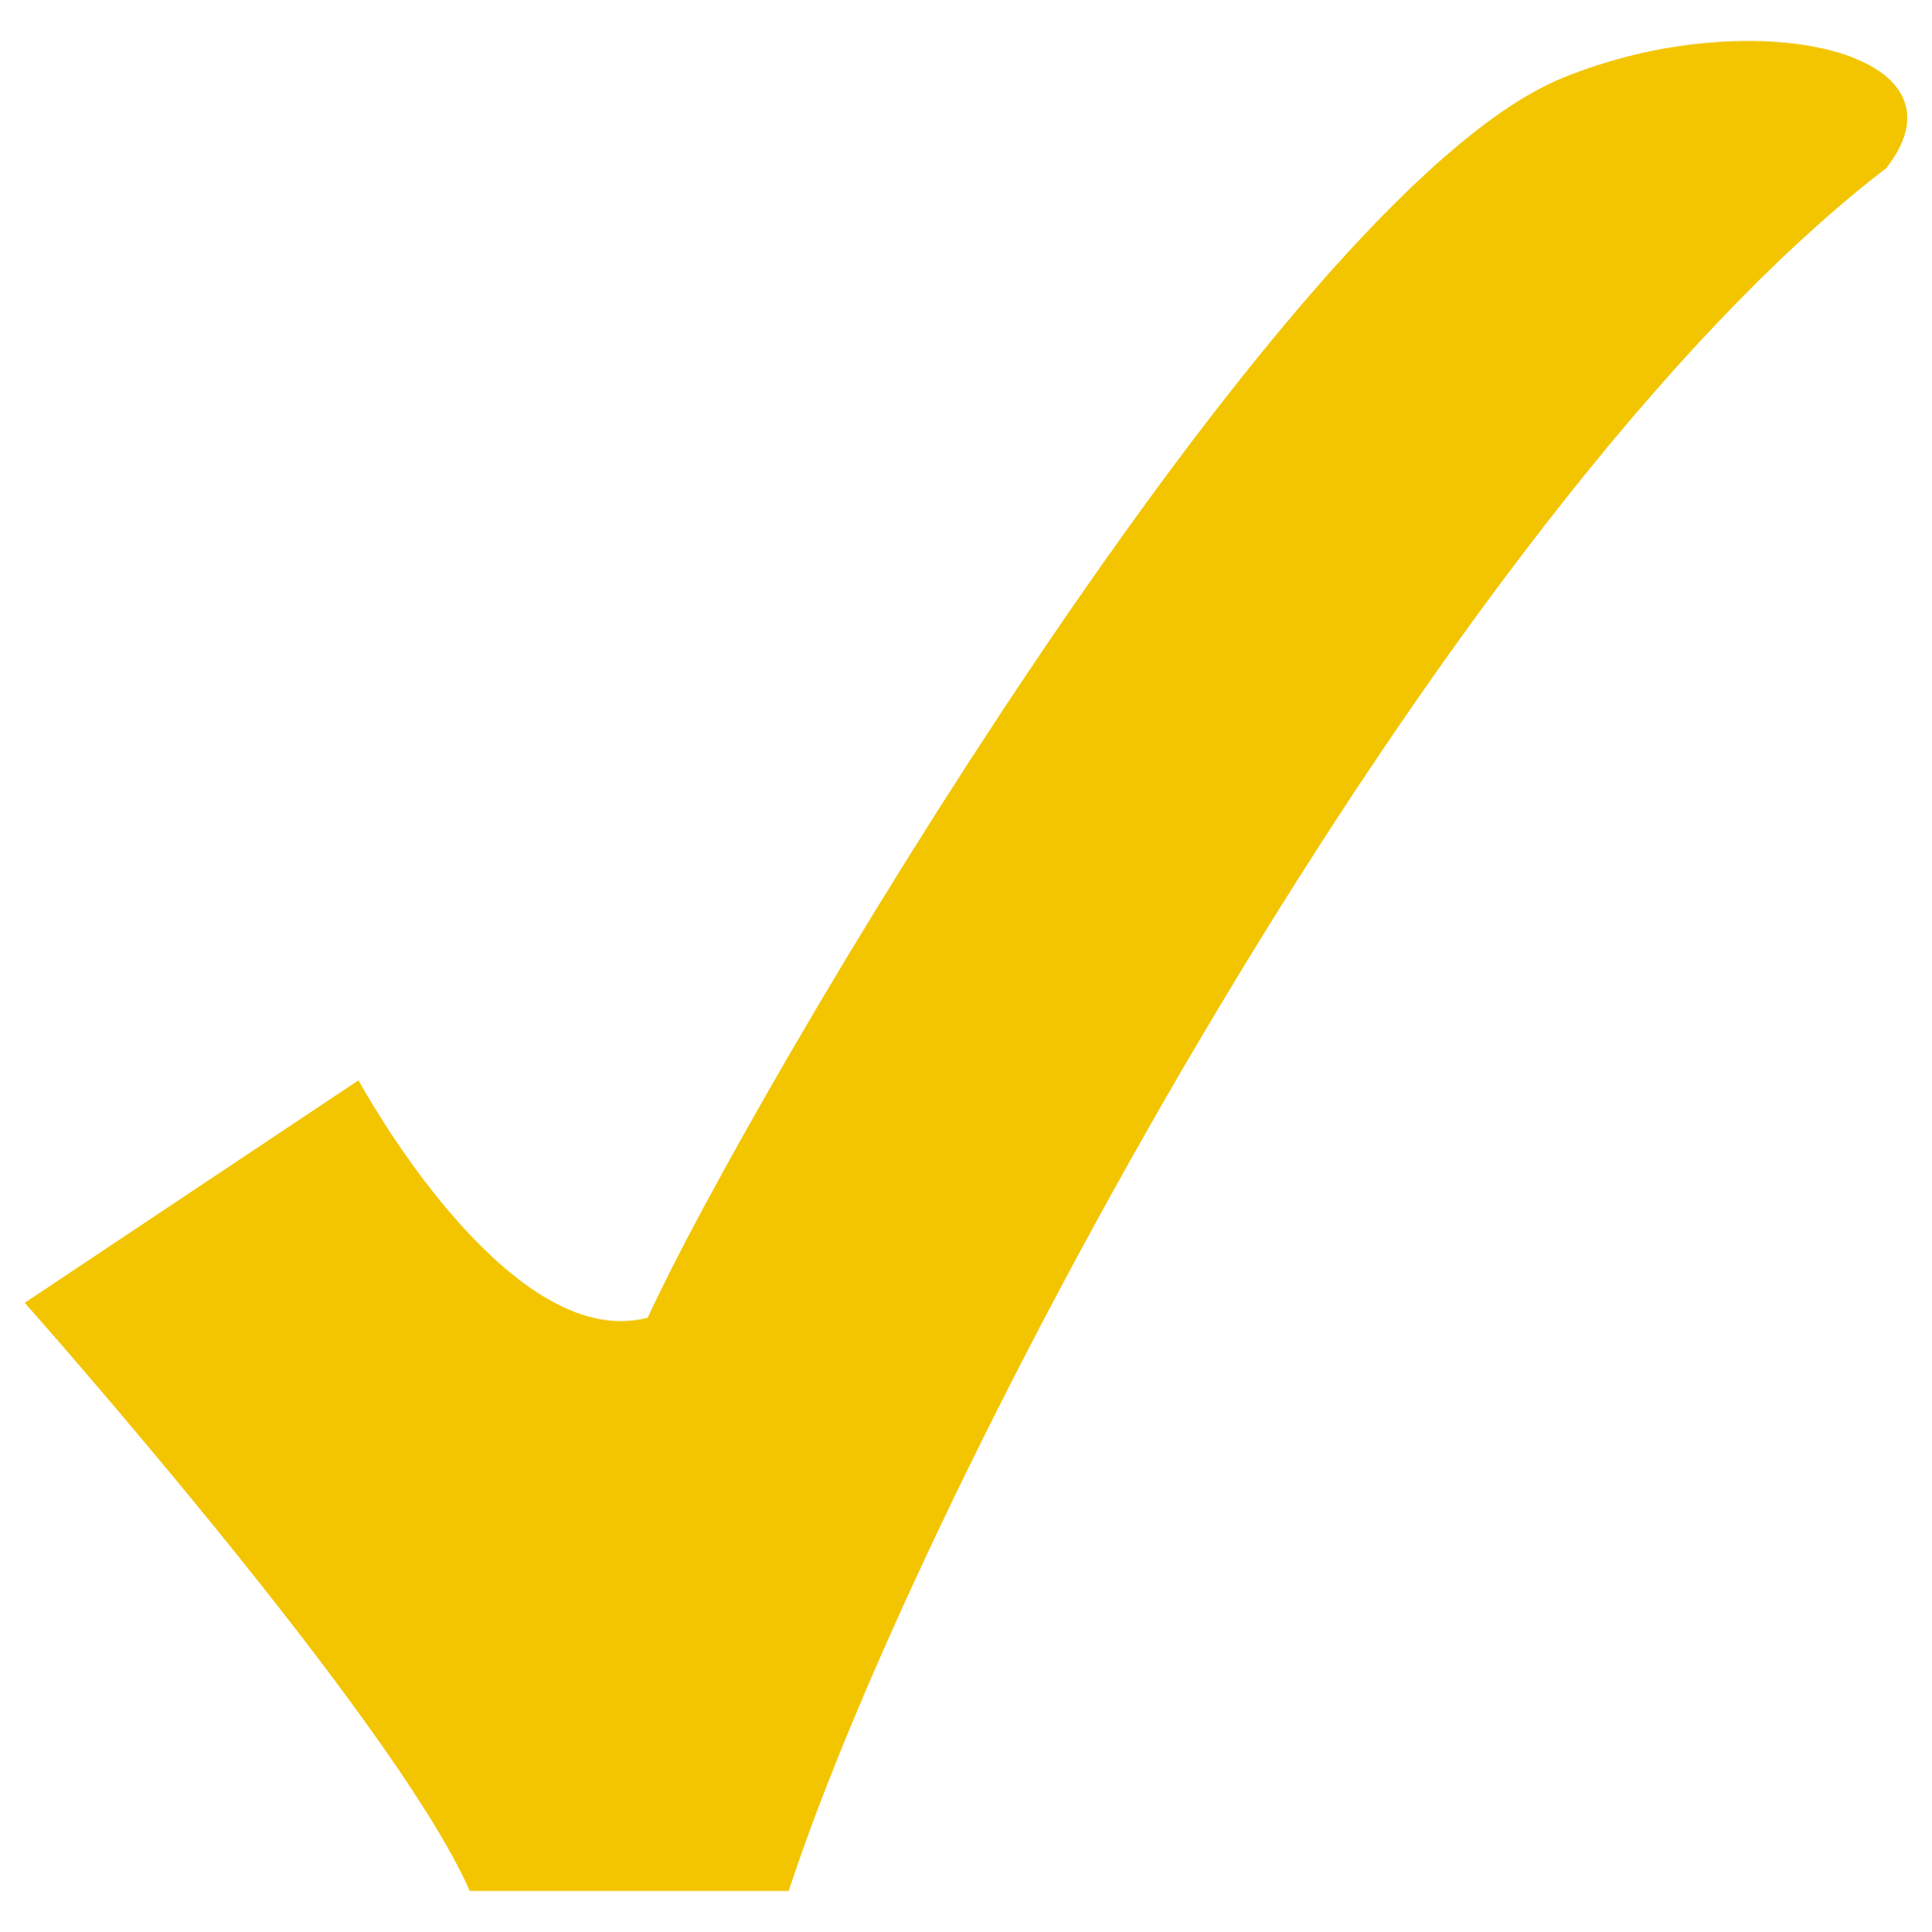 Yellow check mark clipart clipart library library Free Yellow Check Mark Png, Download Free Clip Art, Free ... clipart library library